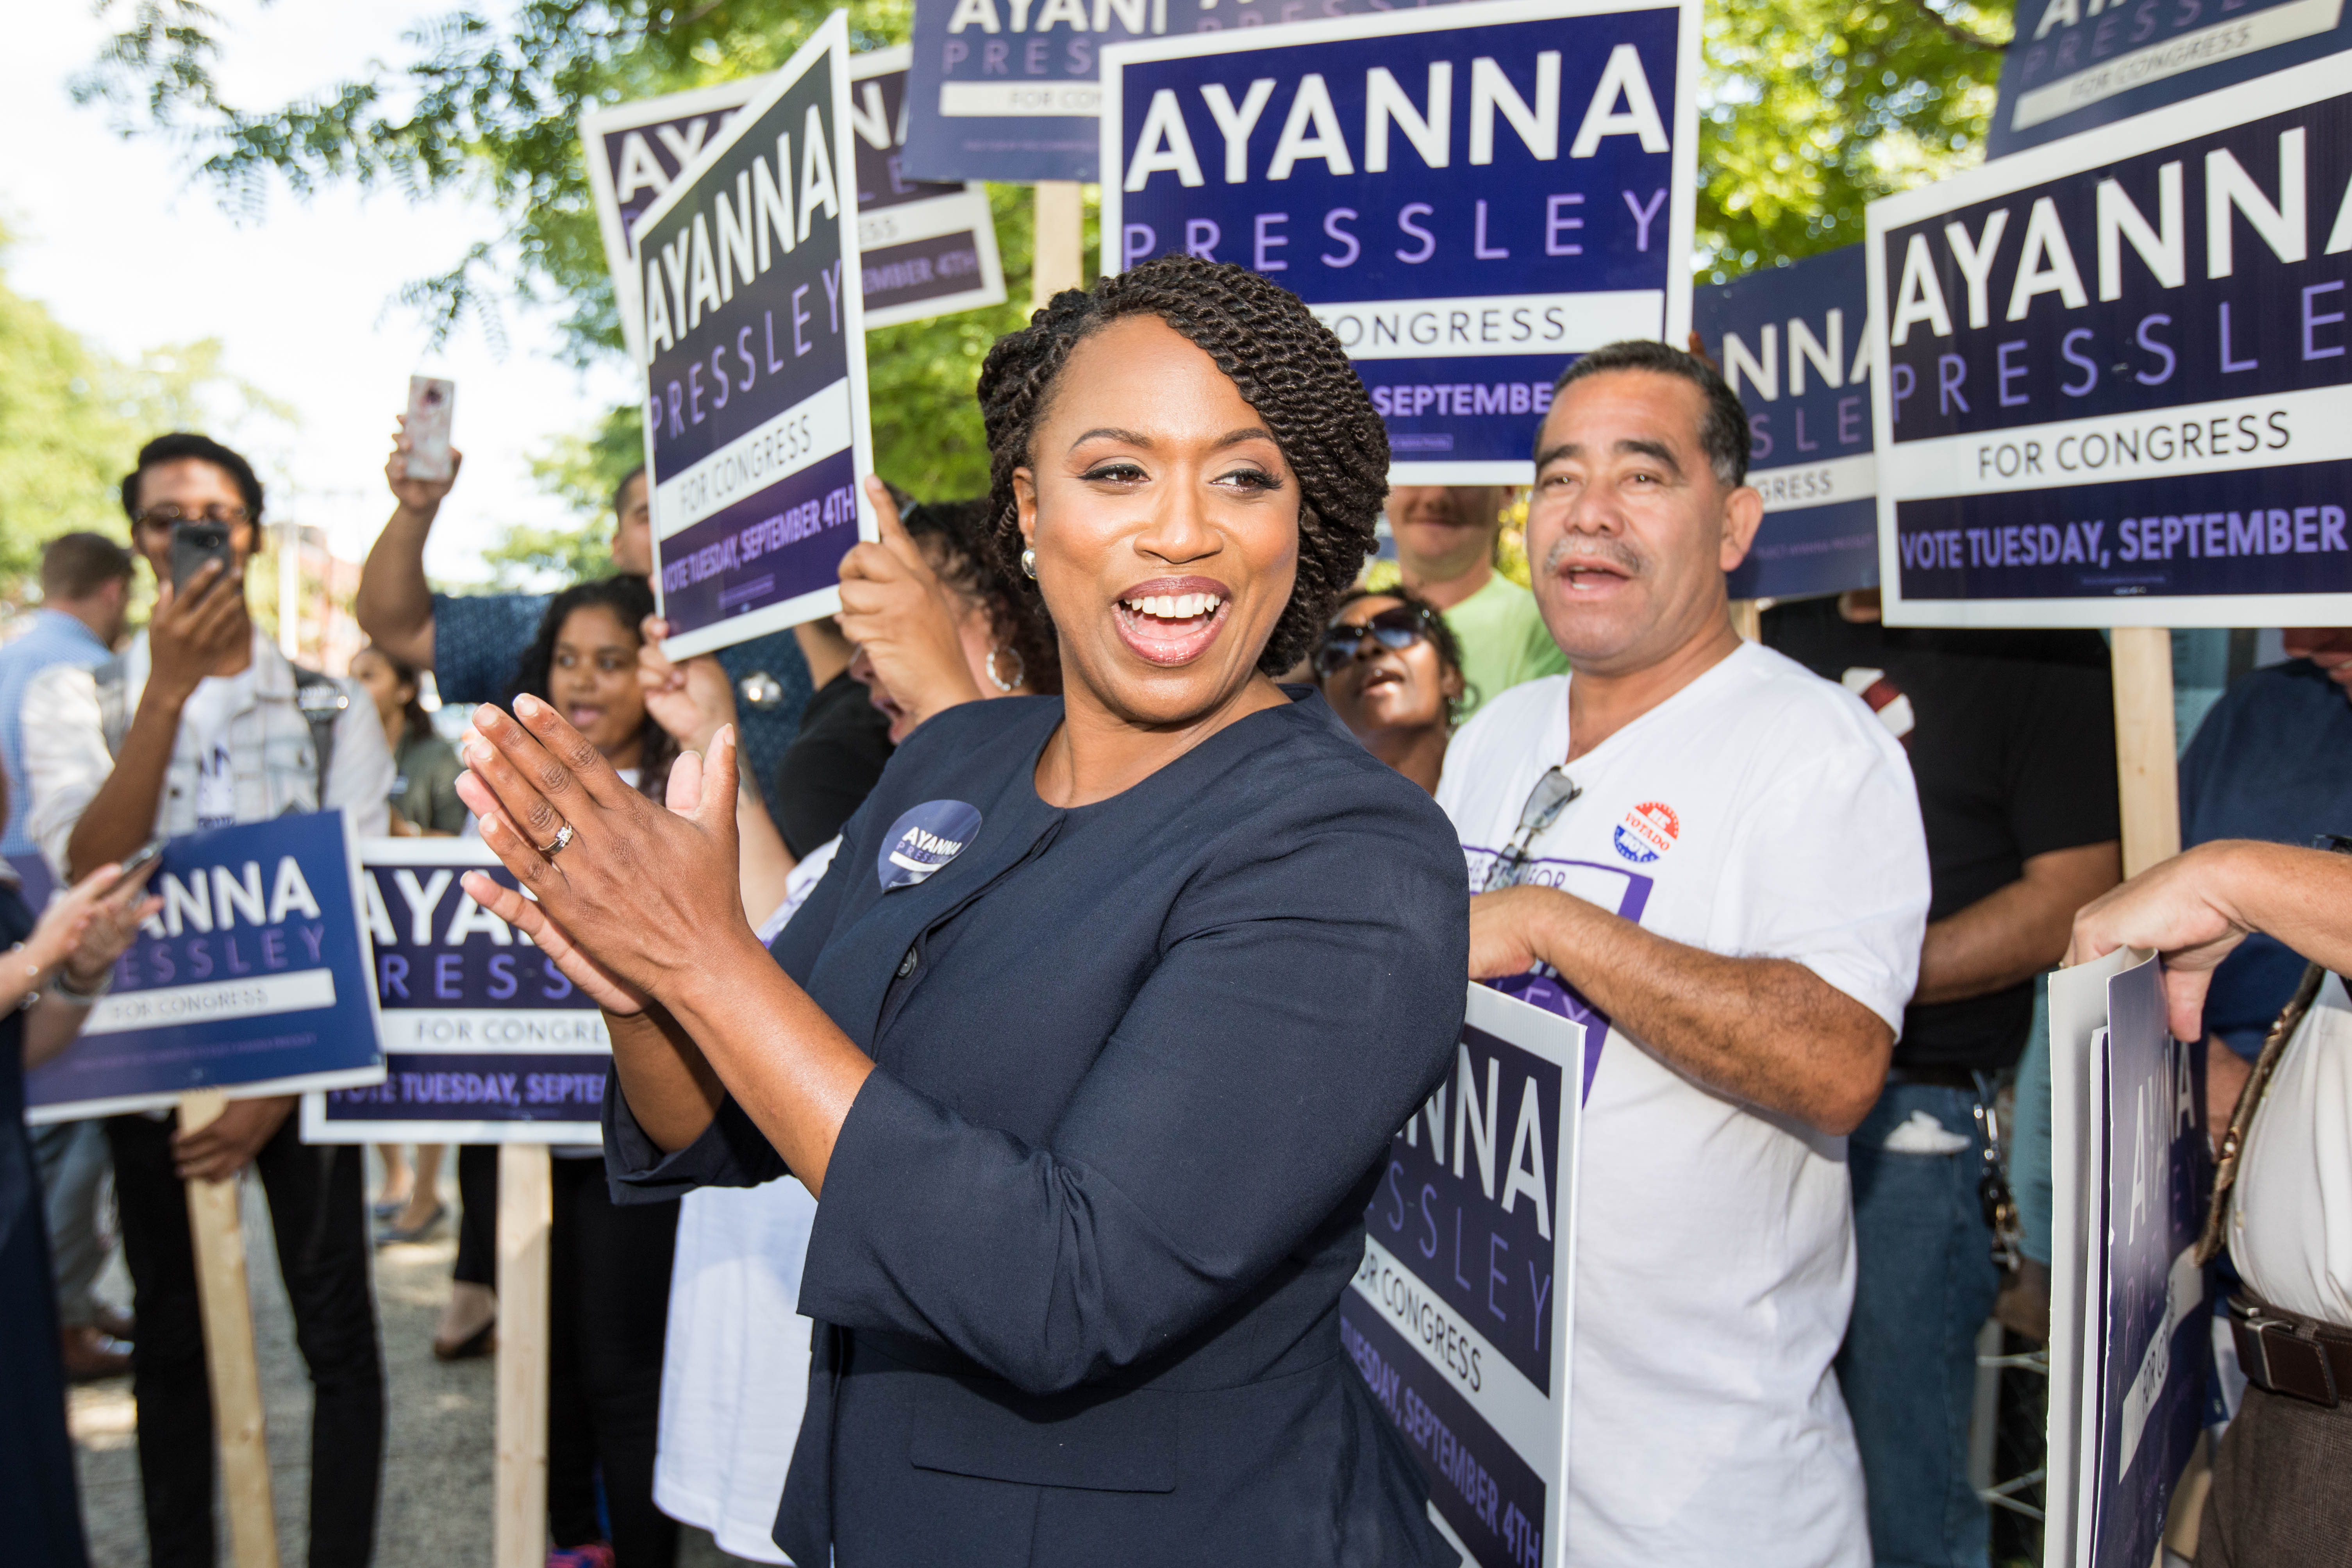 Democrat Ayanna Pressley closer to being first black woman elected to Congress from Mass. after Rep. Michael Capuano concedes primary